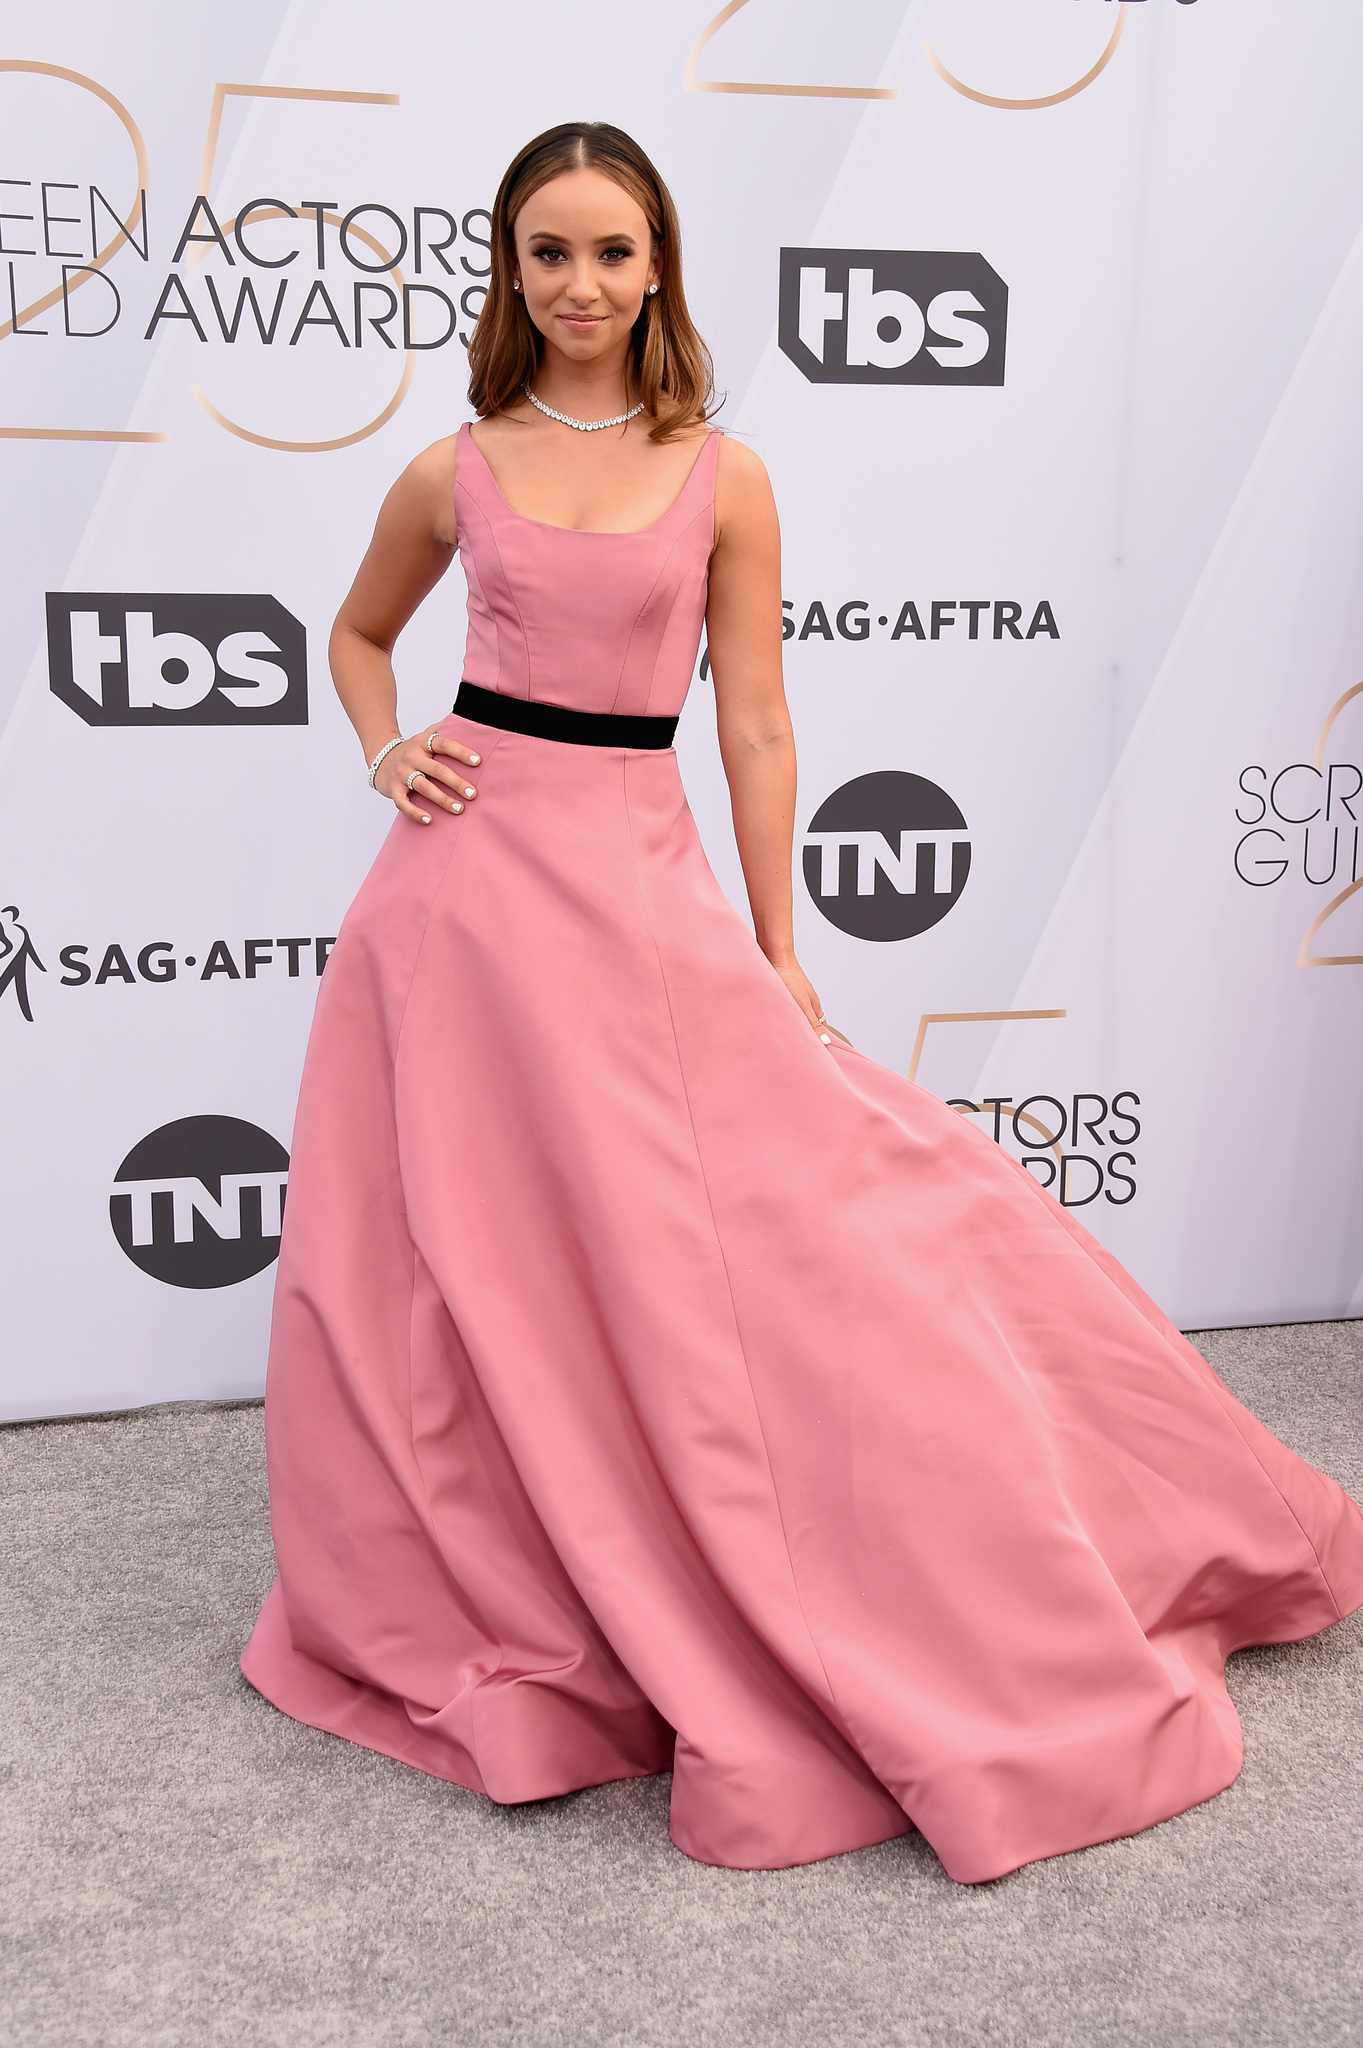 Britt Baron at an event for The 25th Annual Screen Actors Guild Awards (2019)